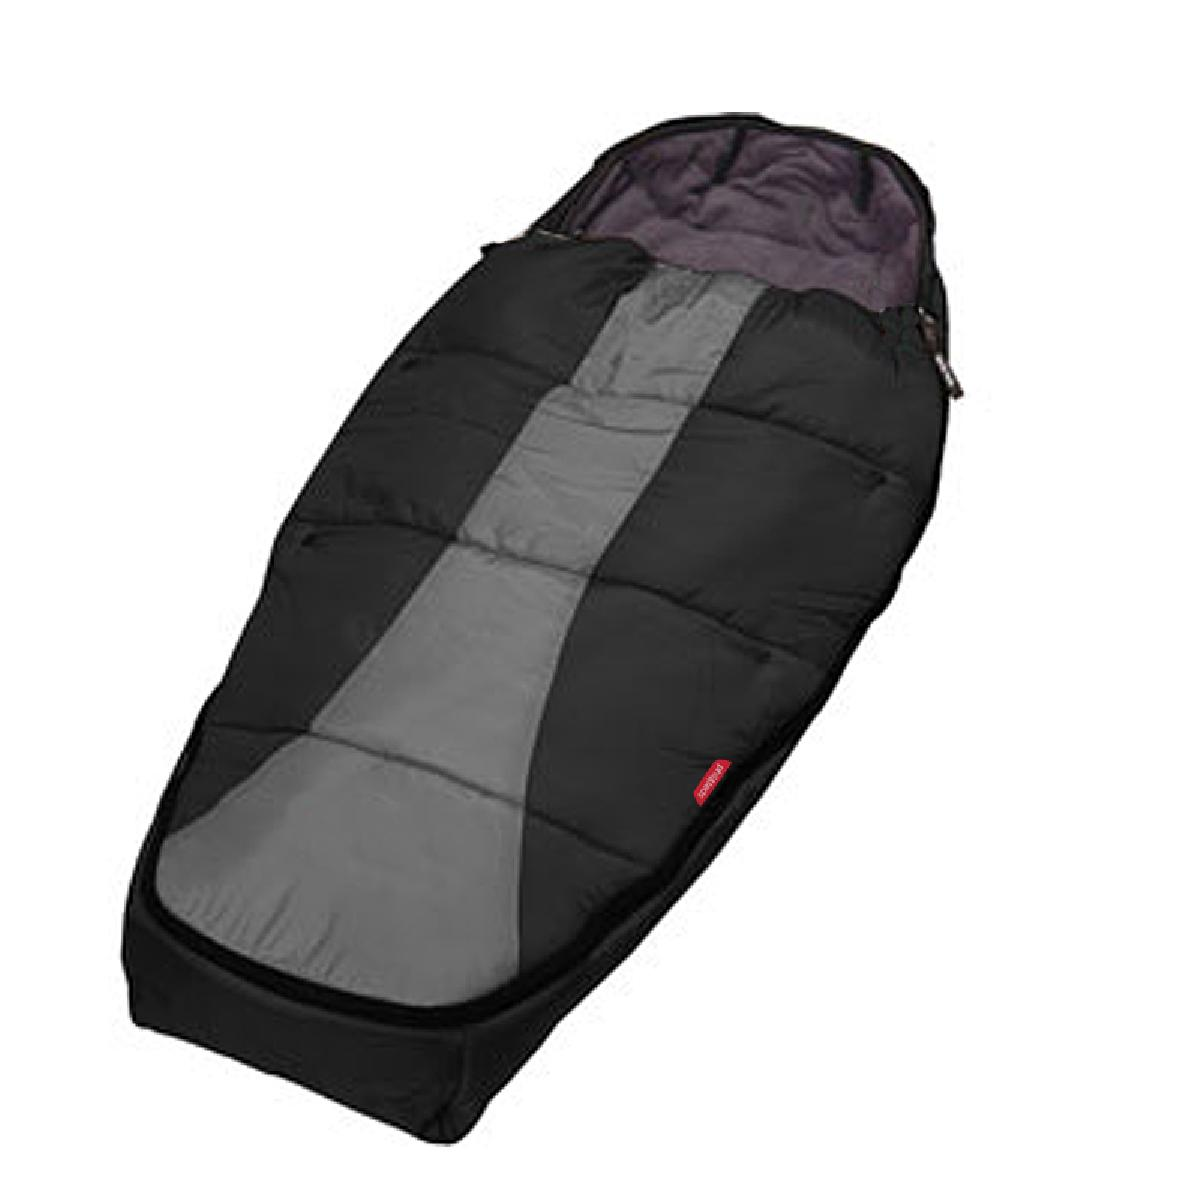 Sleeping bag BLACK-CHARCOAL-30